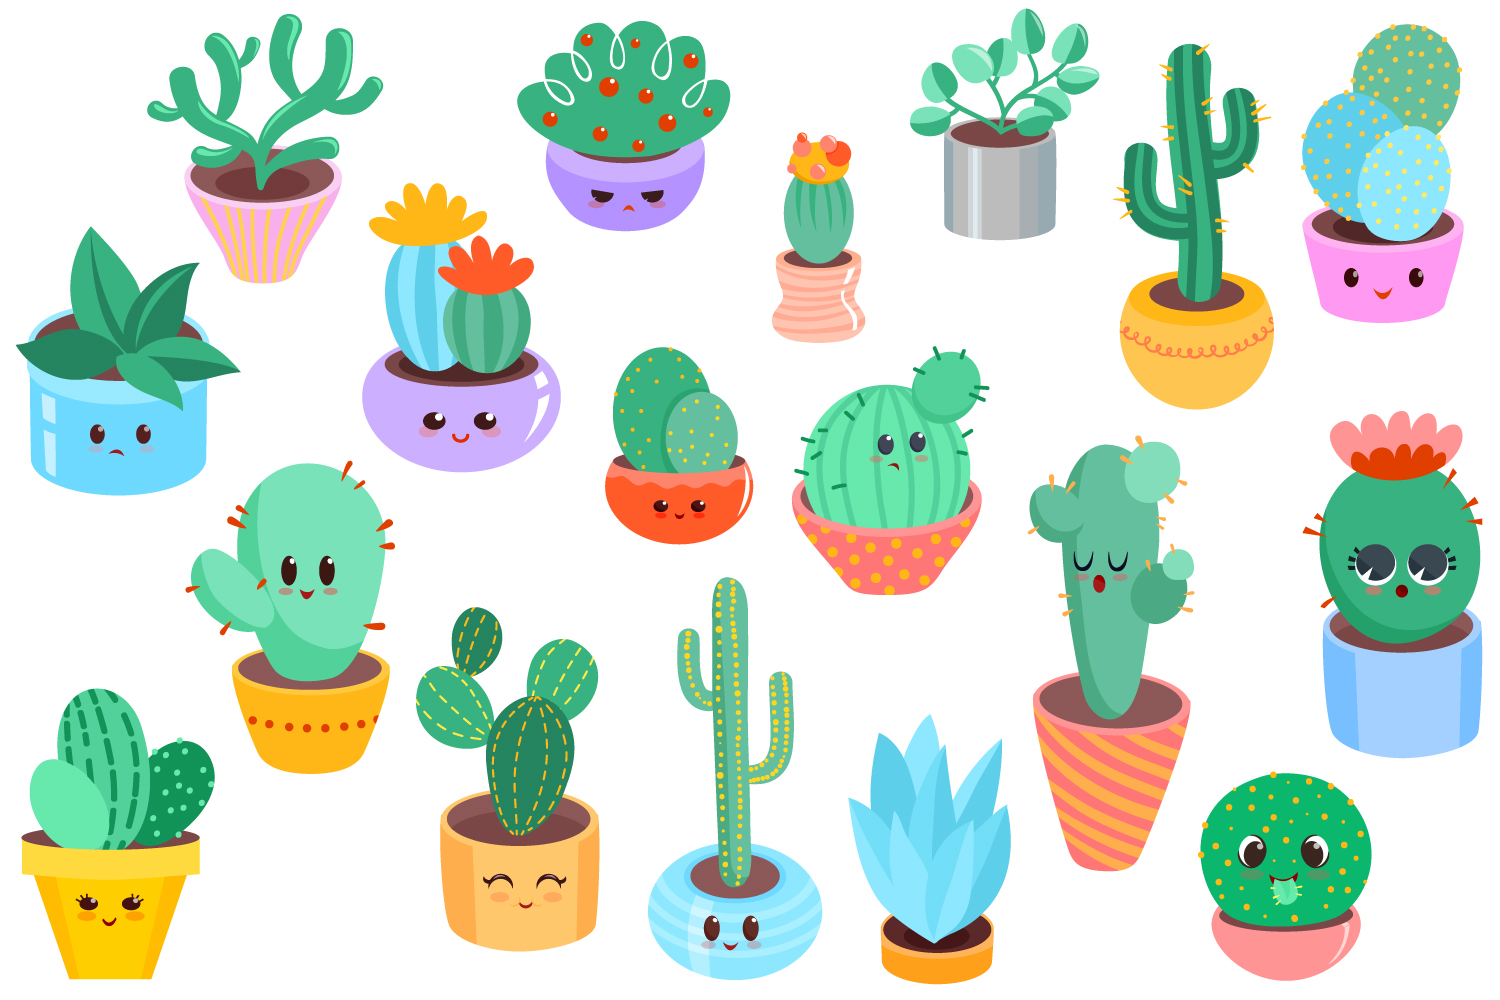 Cute Cacti Clipart - 18 vector items example image 2